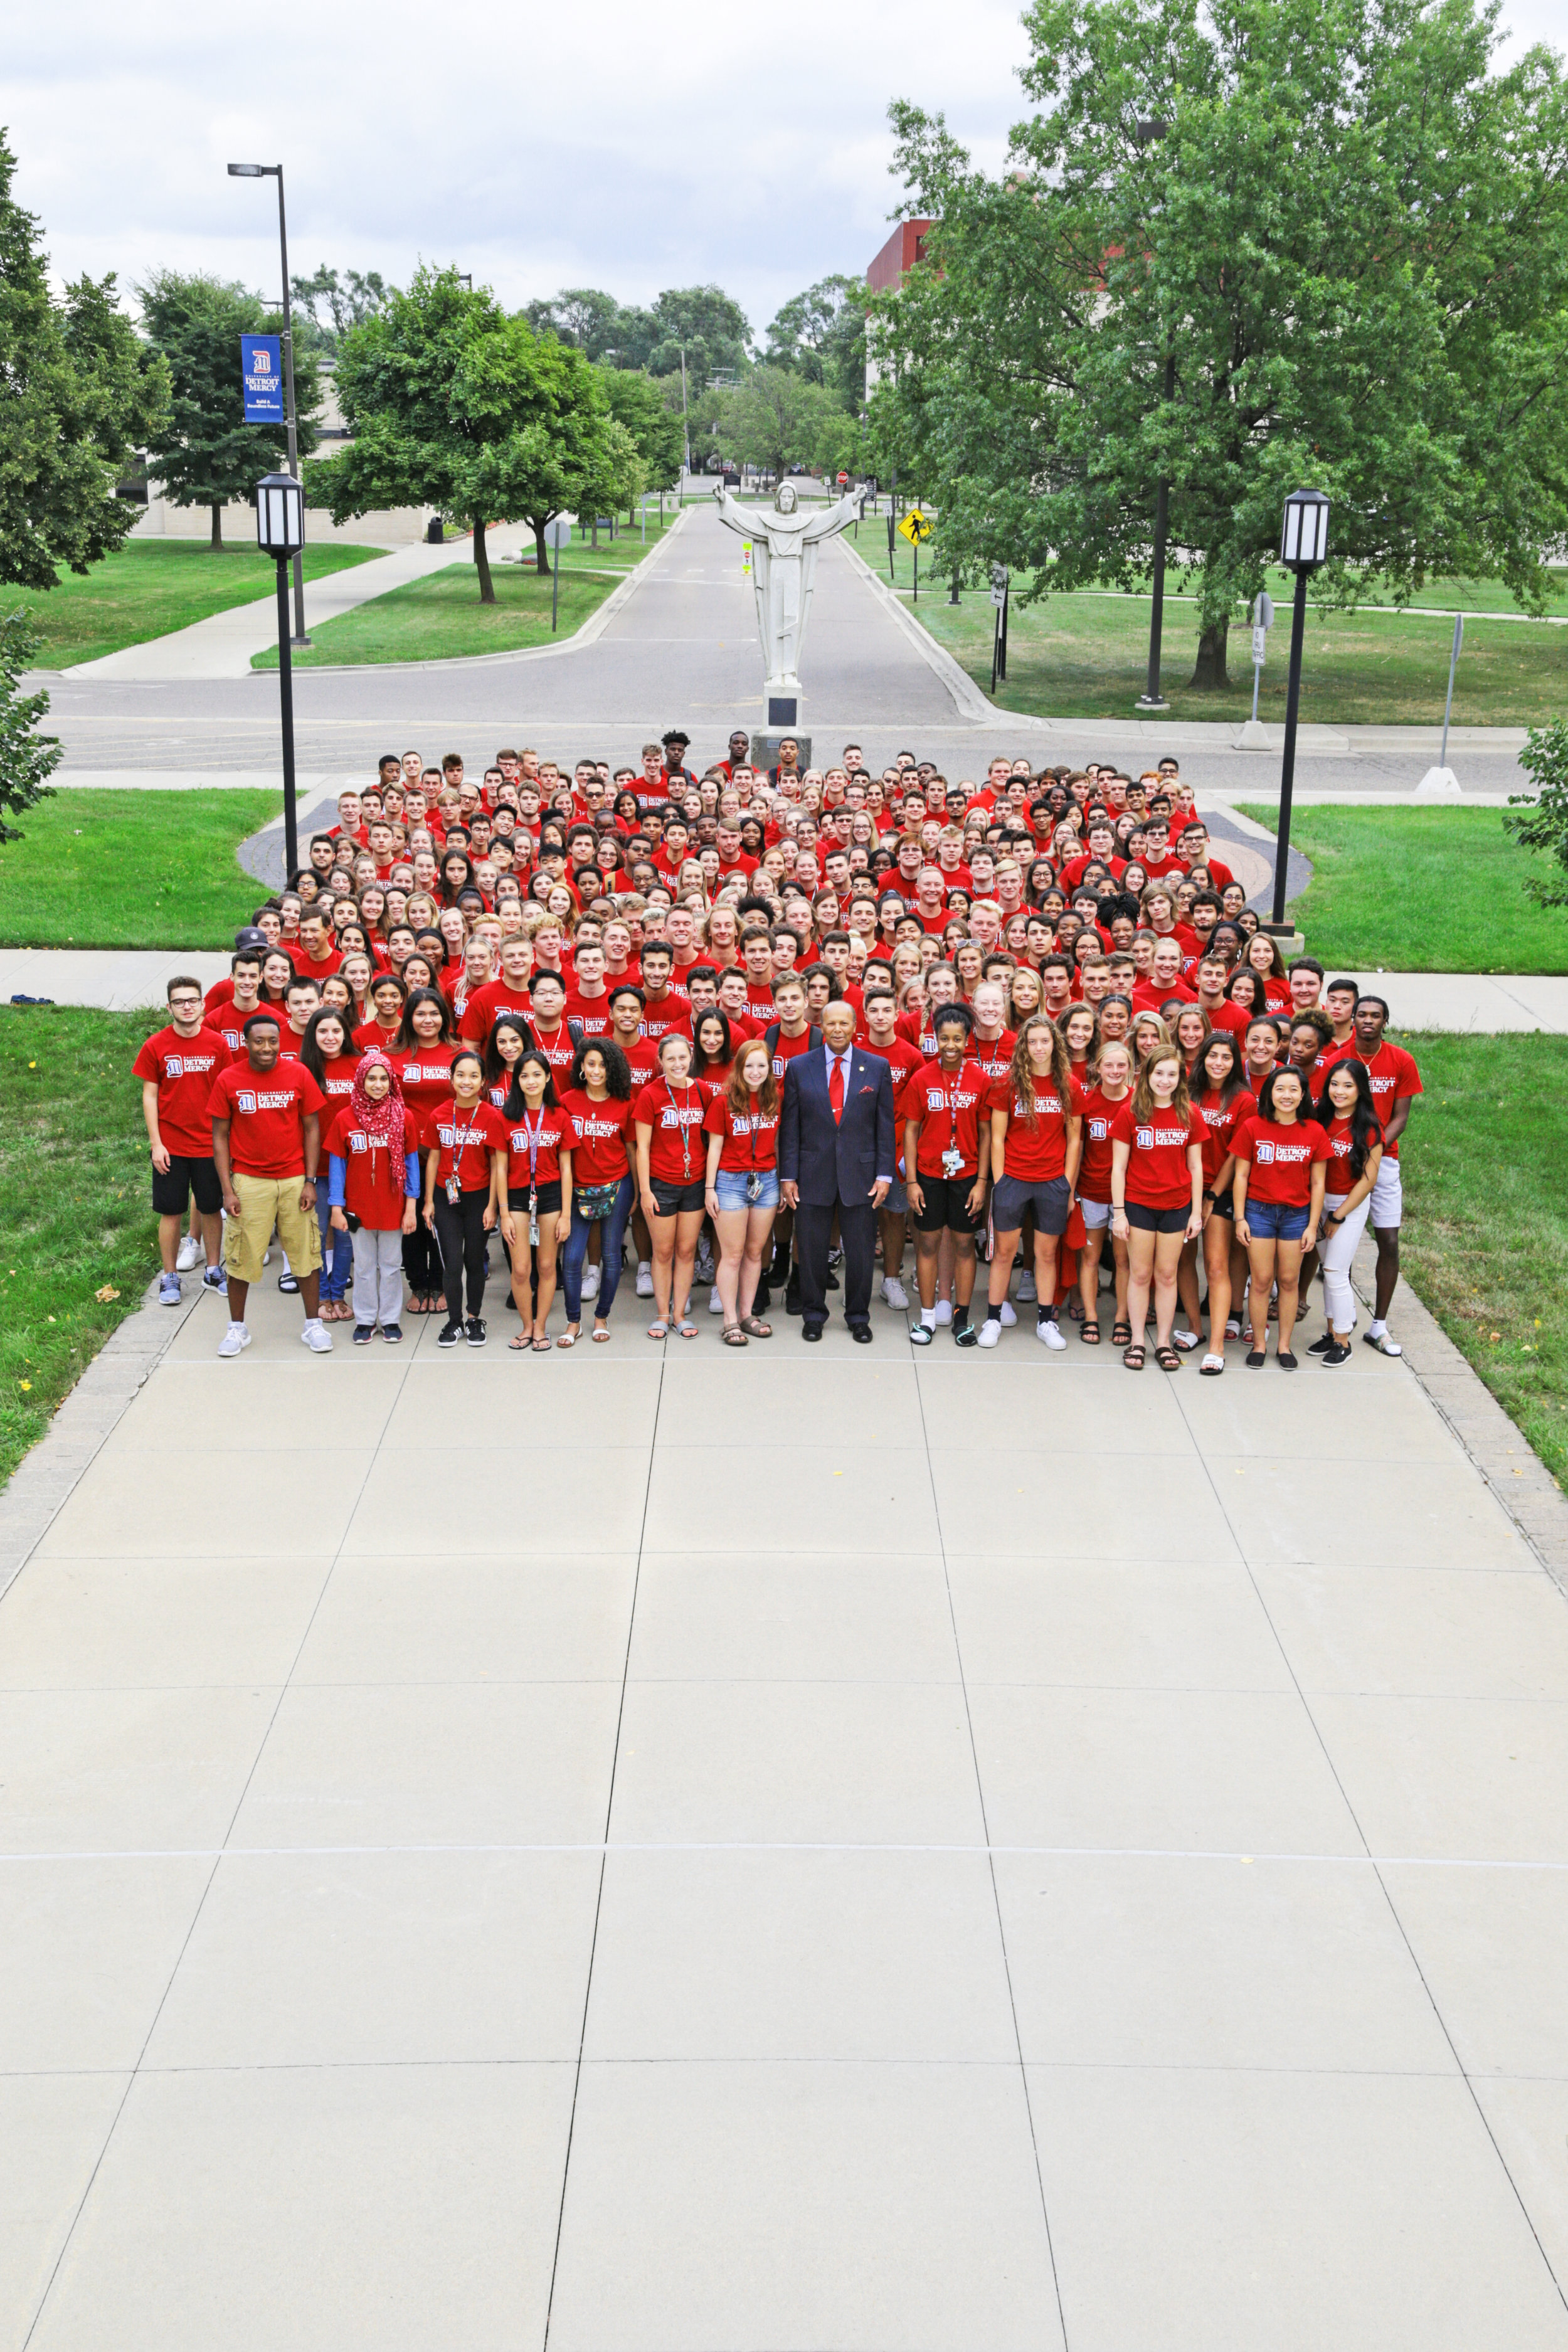 University of Detroit Mercy's president, Dr. Antoine M. Garibaldi (center, first row), welcomed more than 590 new students to campus this fall. This is the fourth consecutive year that Detroit Mercy has experienced an increase in new students (photo by University of Detroit Mercy).